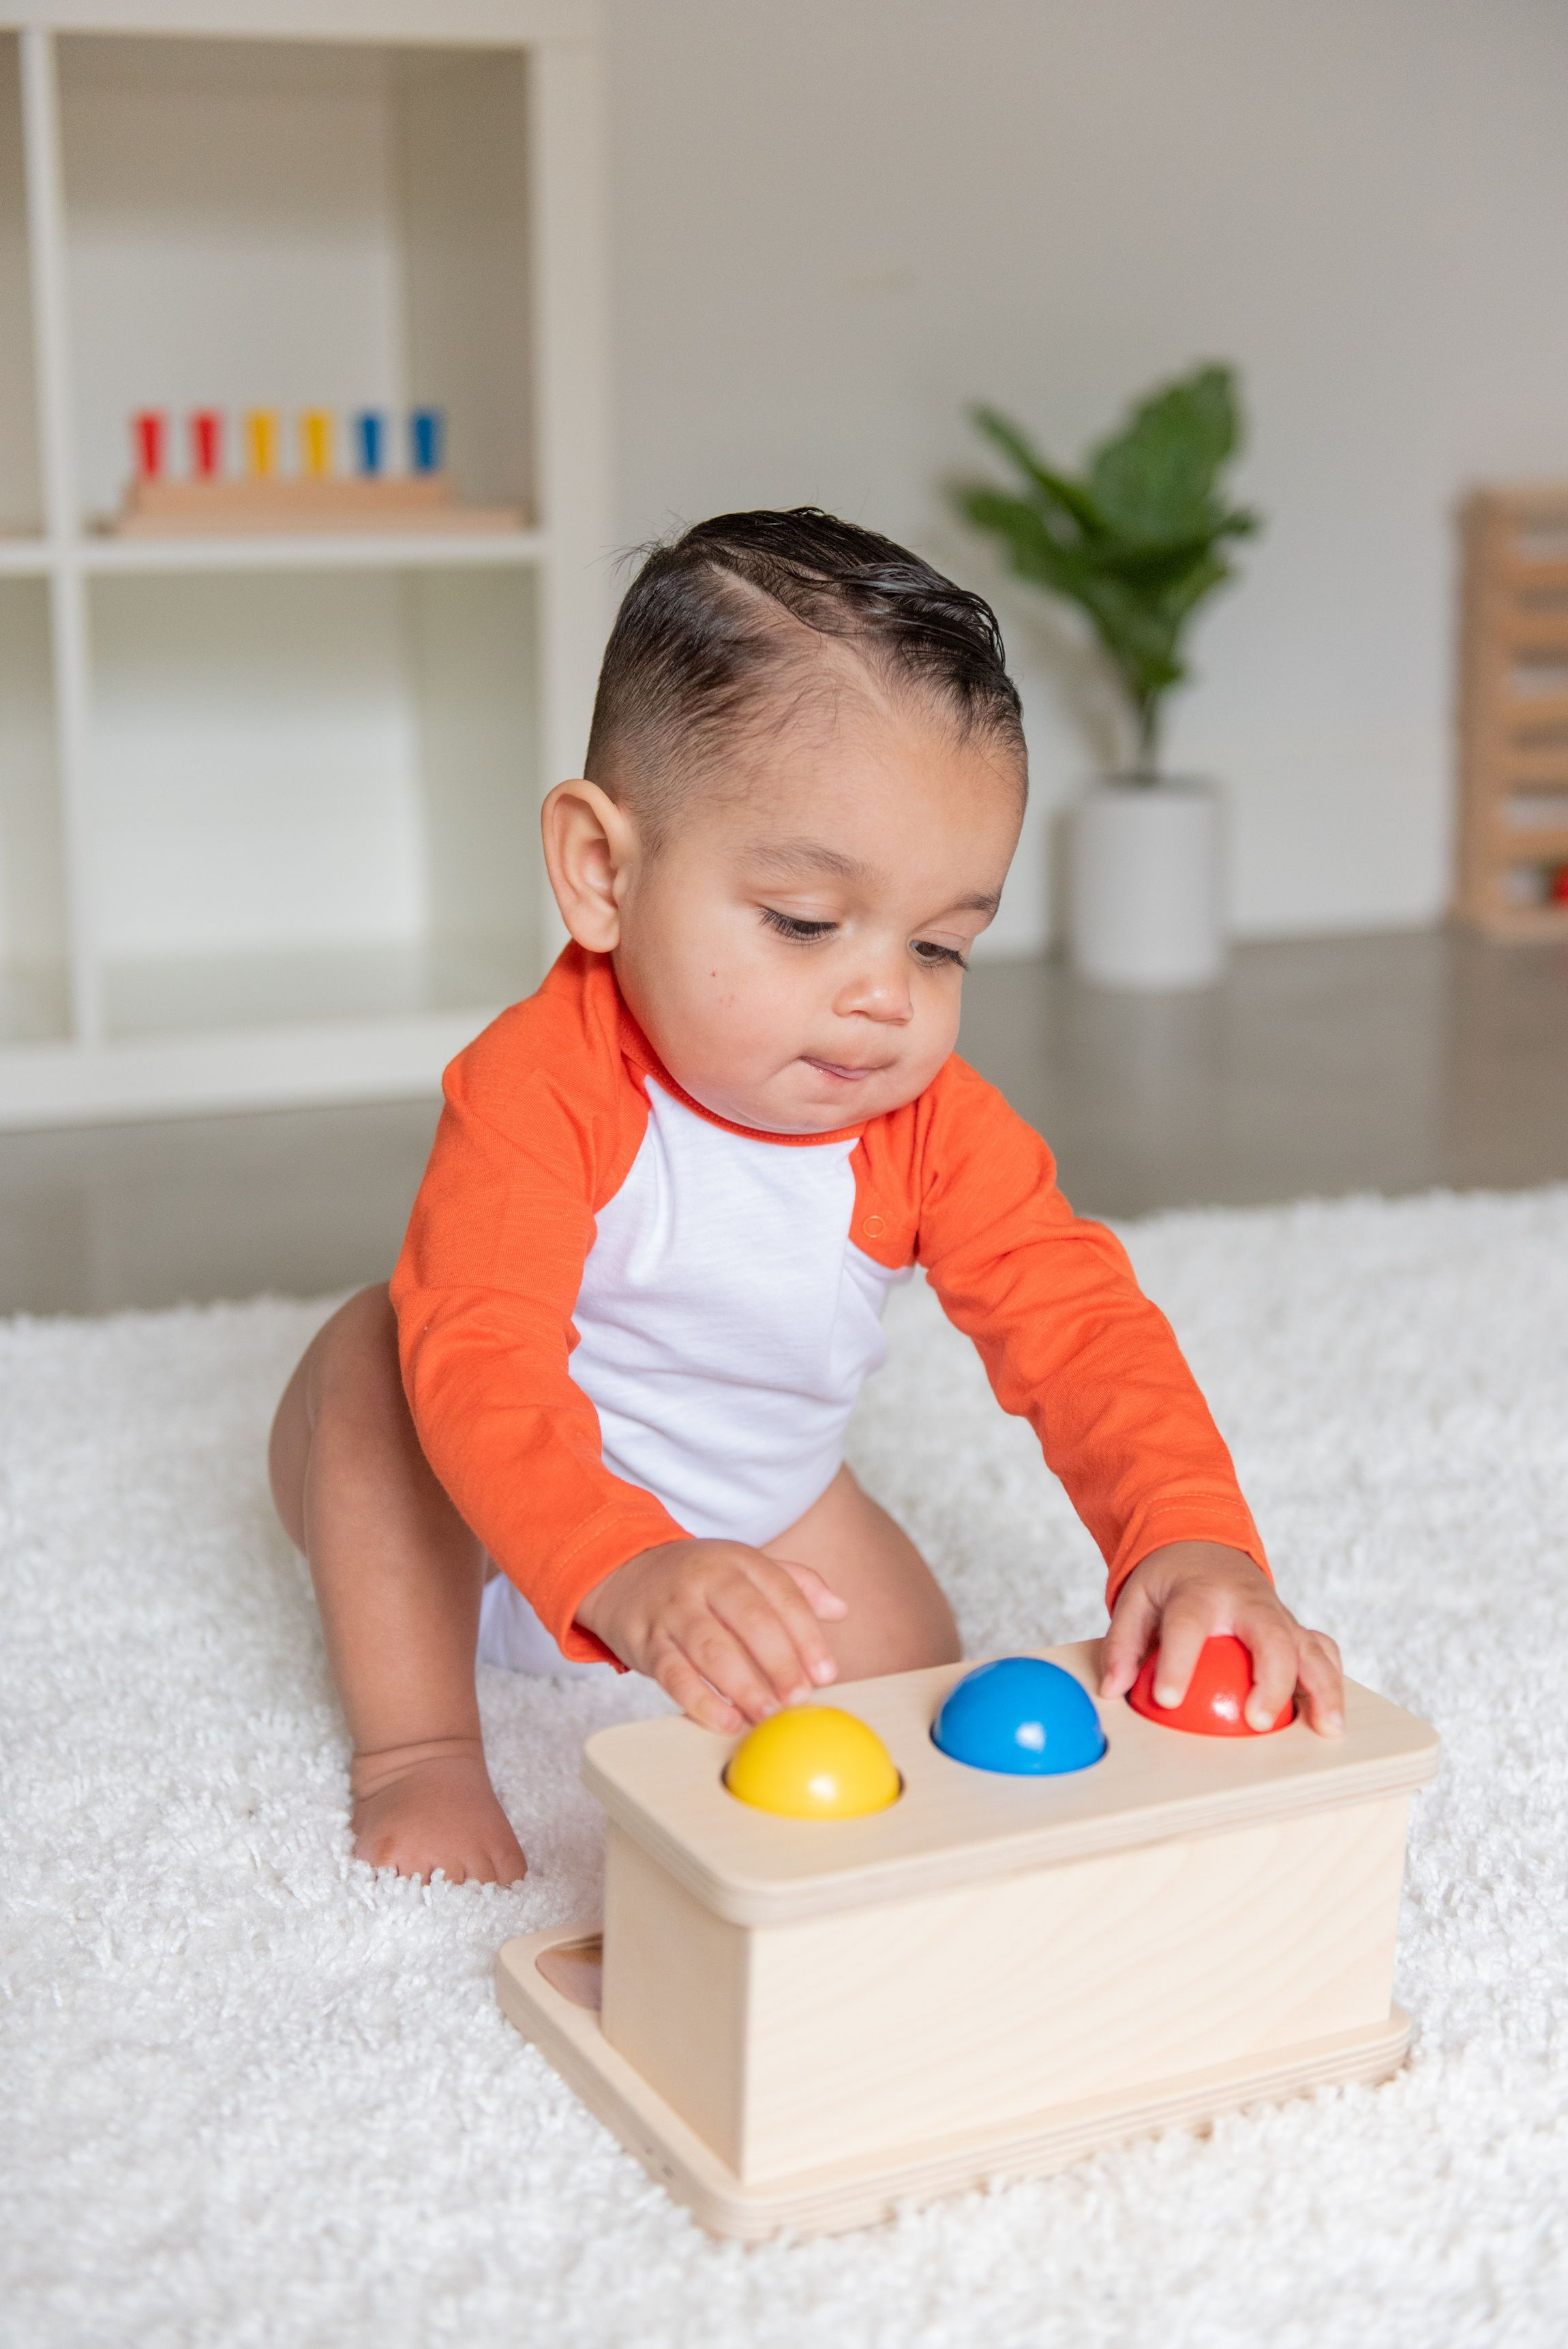 Montessori Toys for Baby Learning & Development | Monti ...